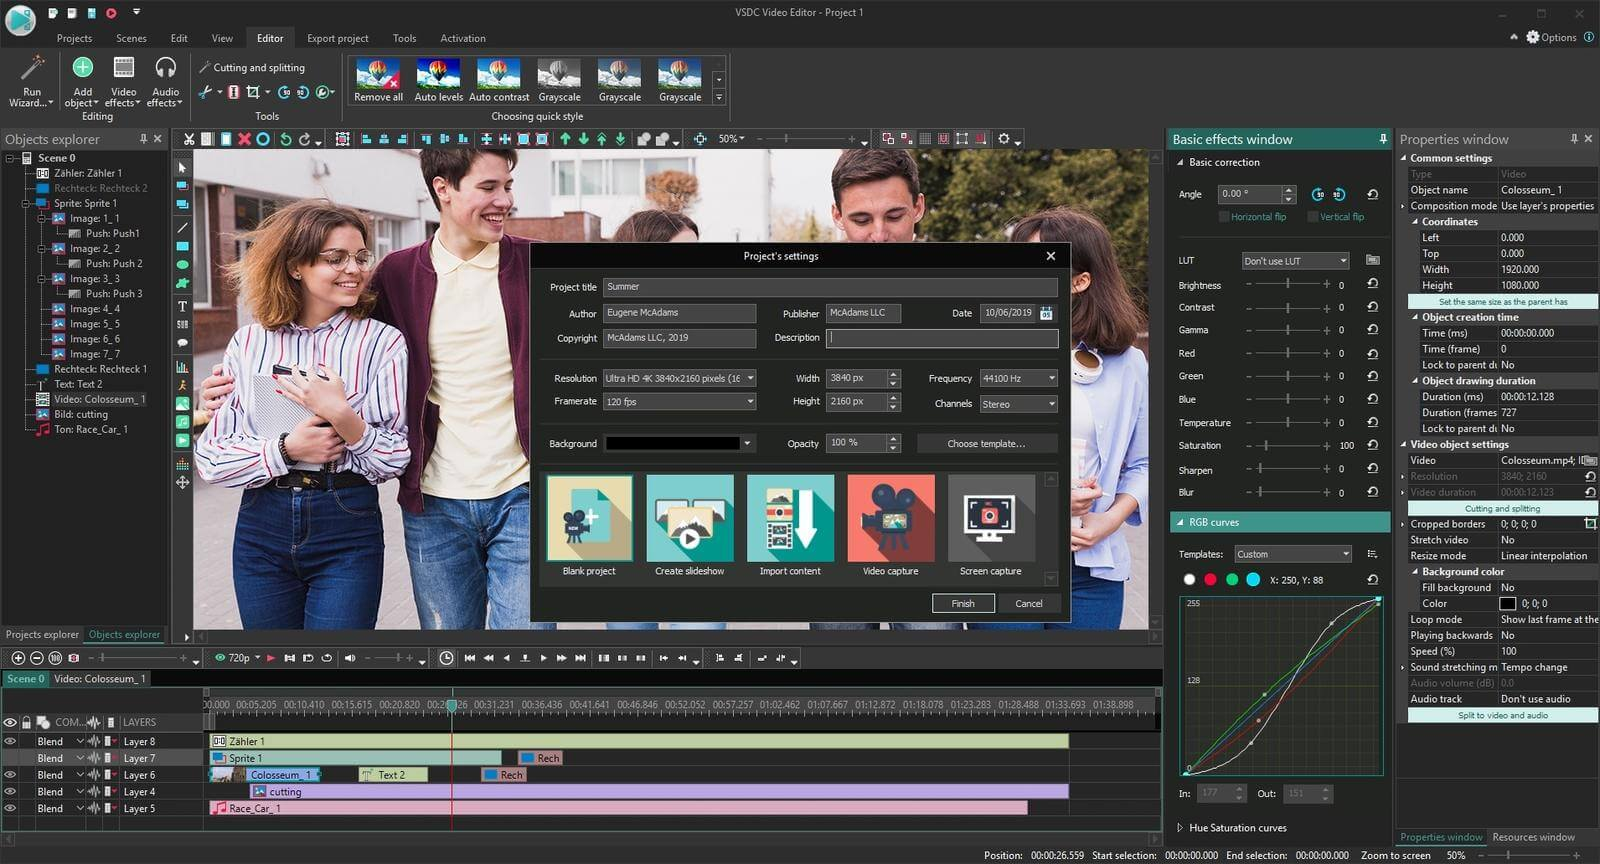 VSDC Video Editor Pro Screenshot